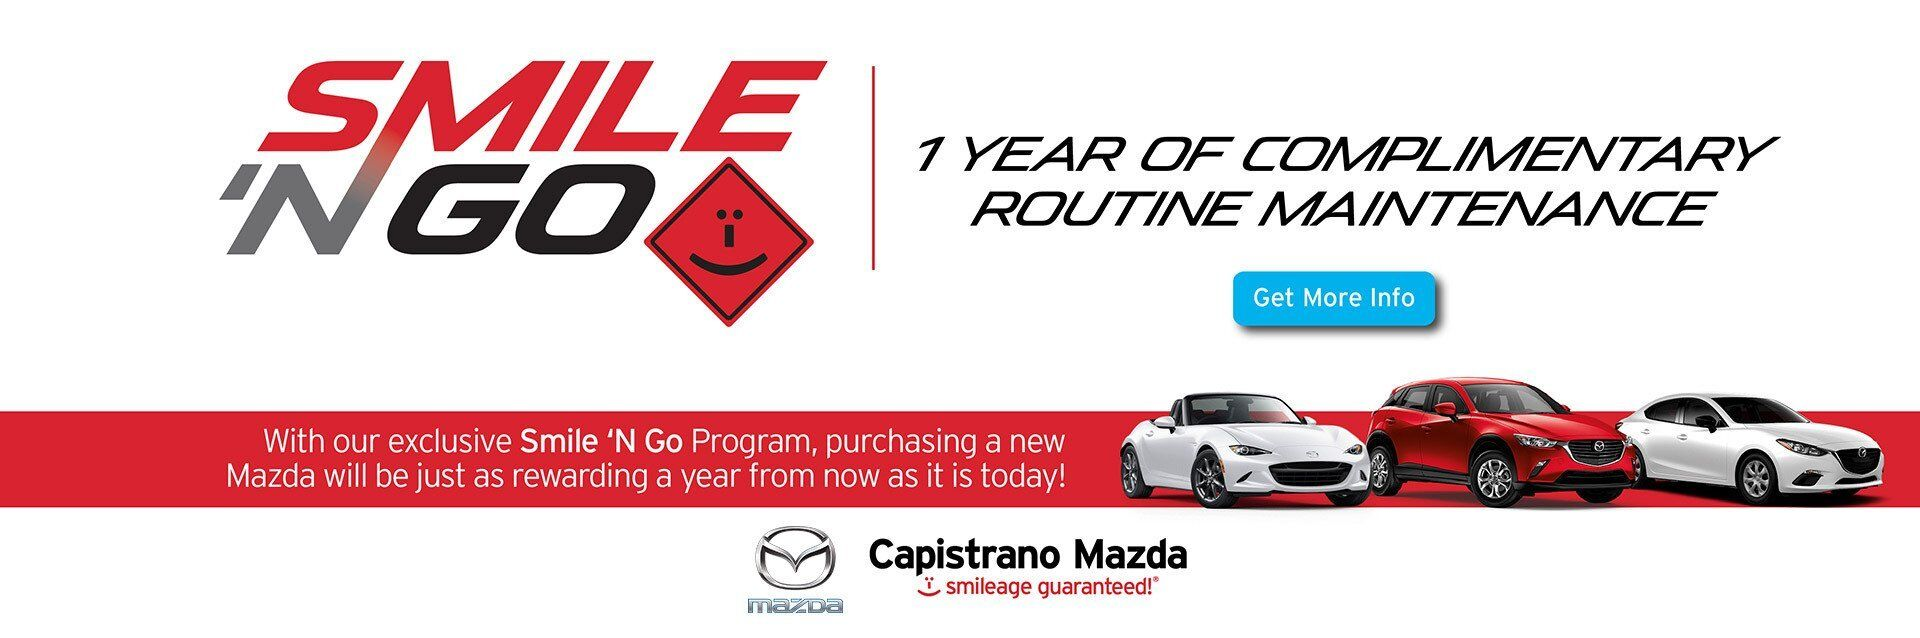 Capistrano Mazda Exclusive Program - Smile 'N Go